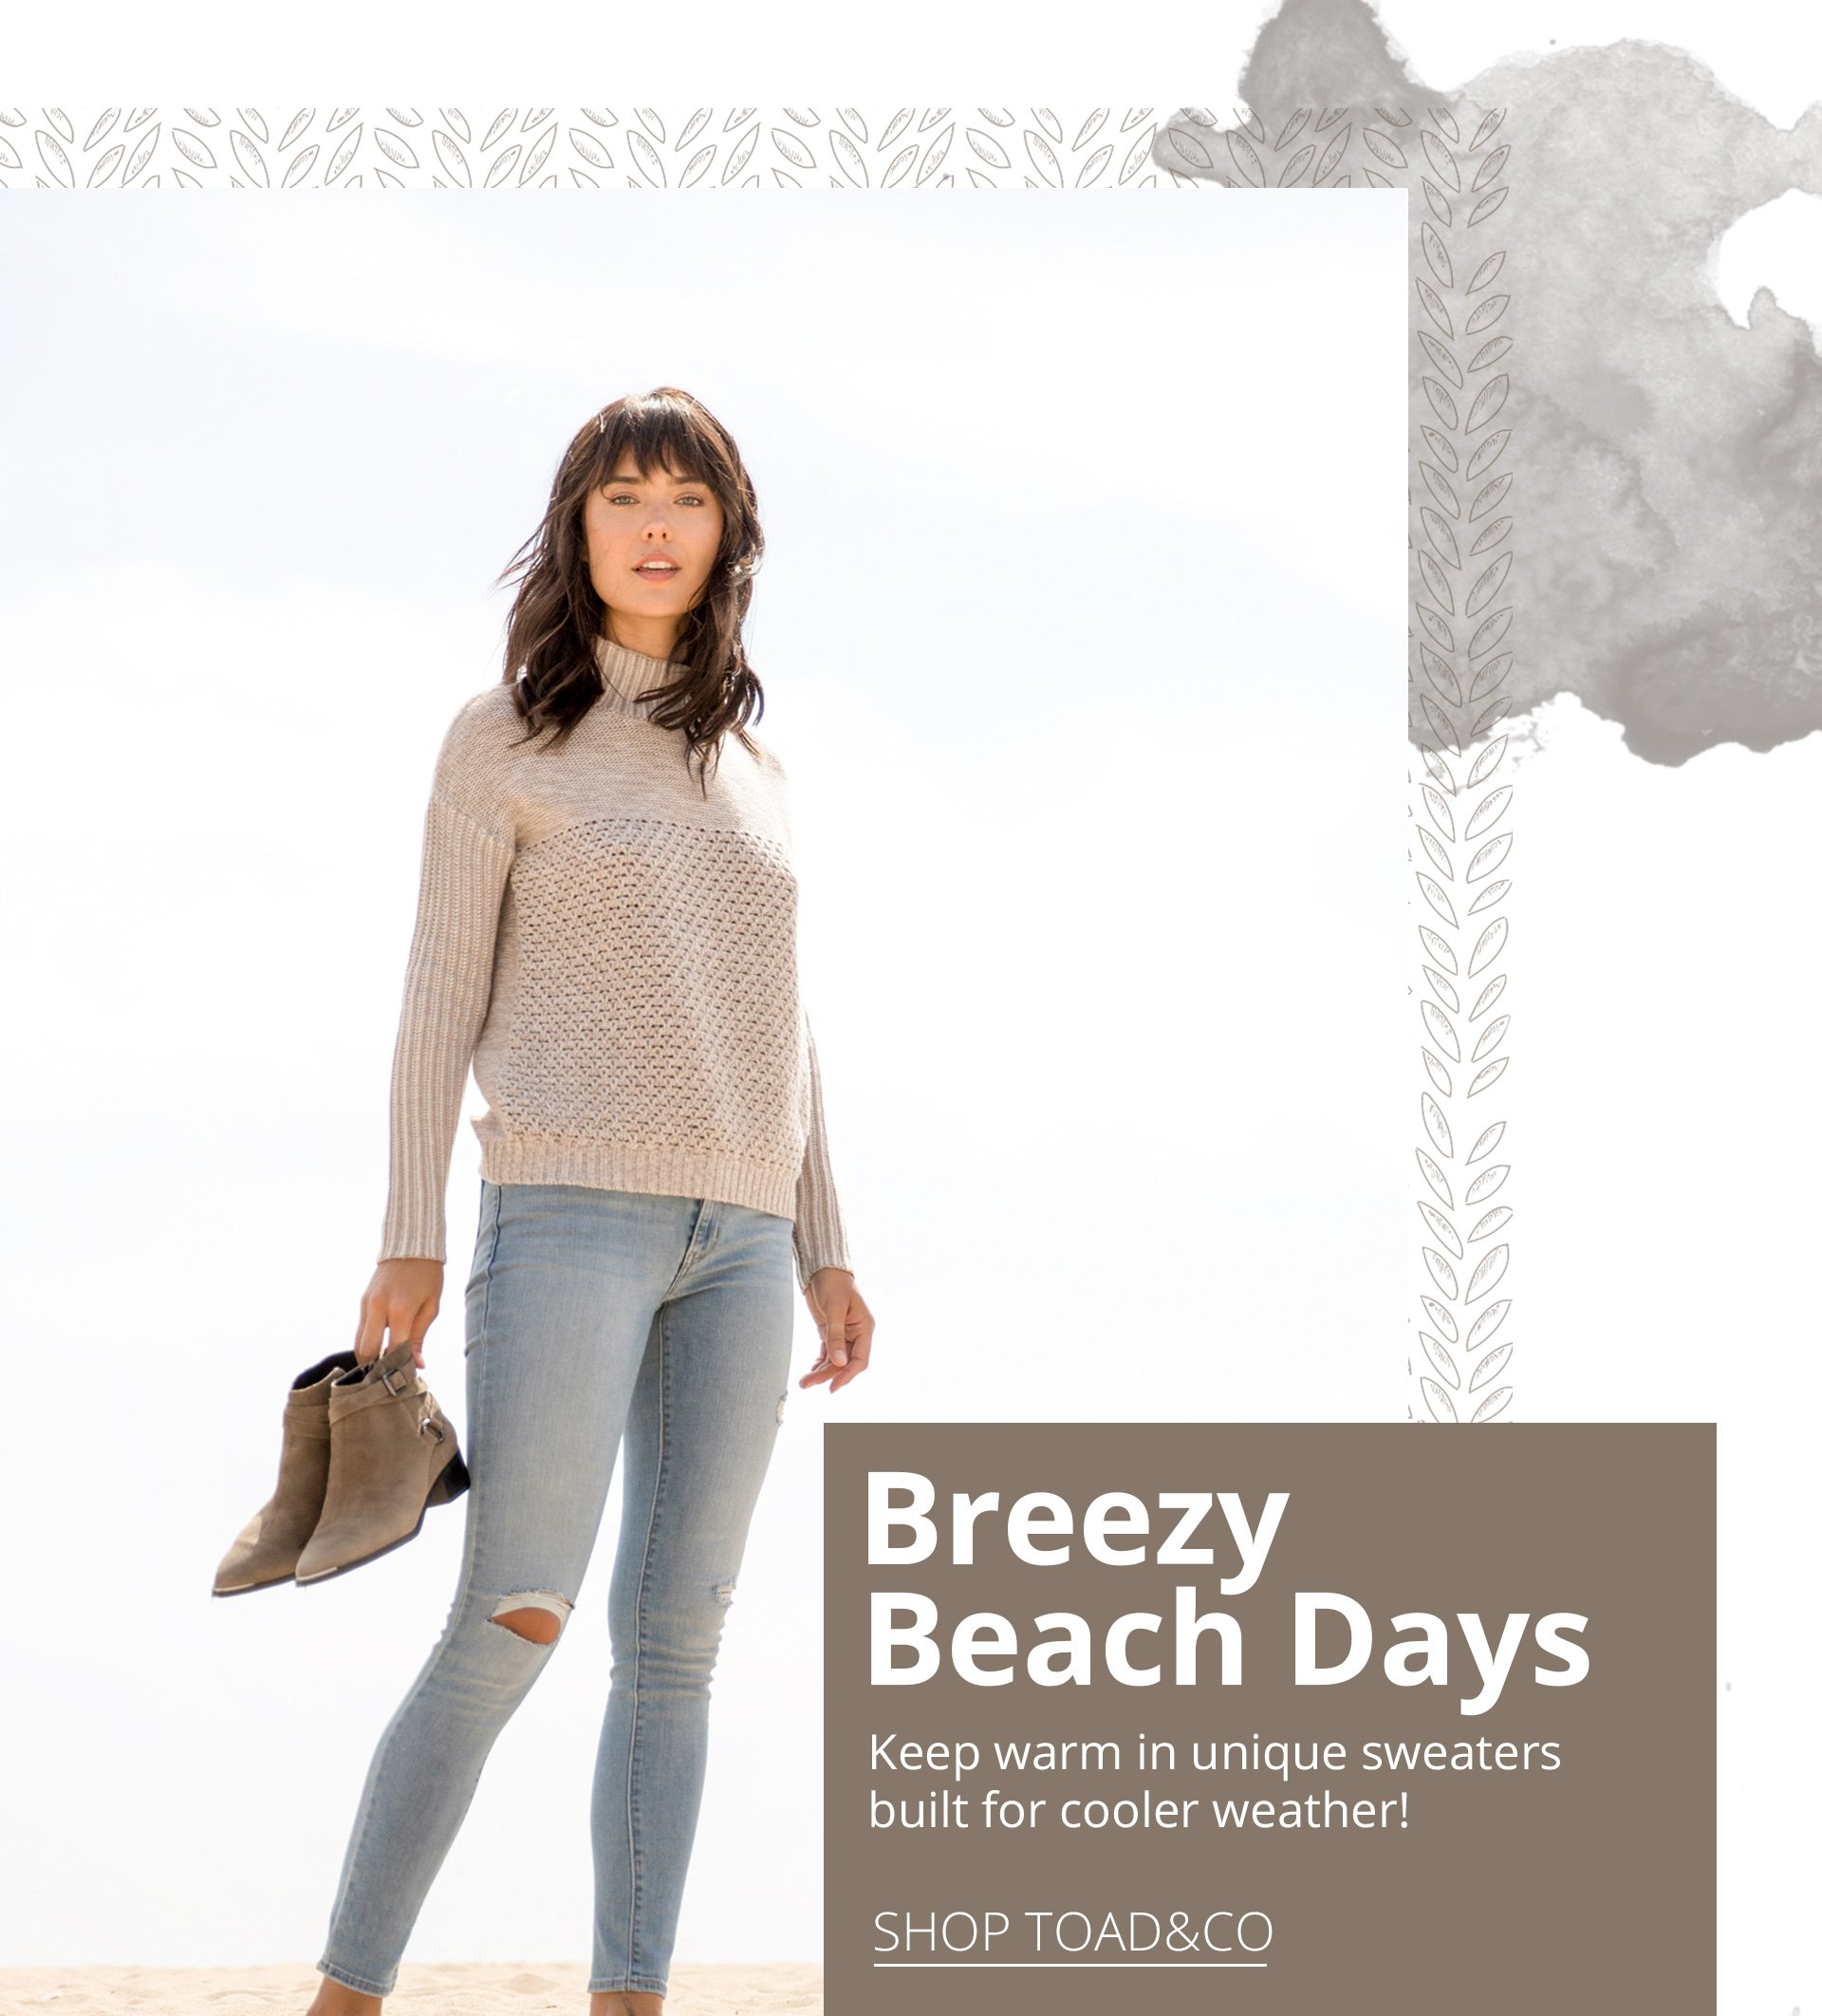 Breezy beach days. Keep warm in unique sweaters built for cooler weather!